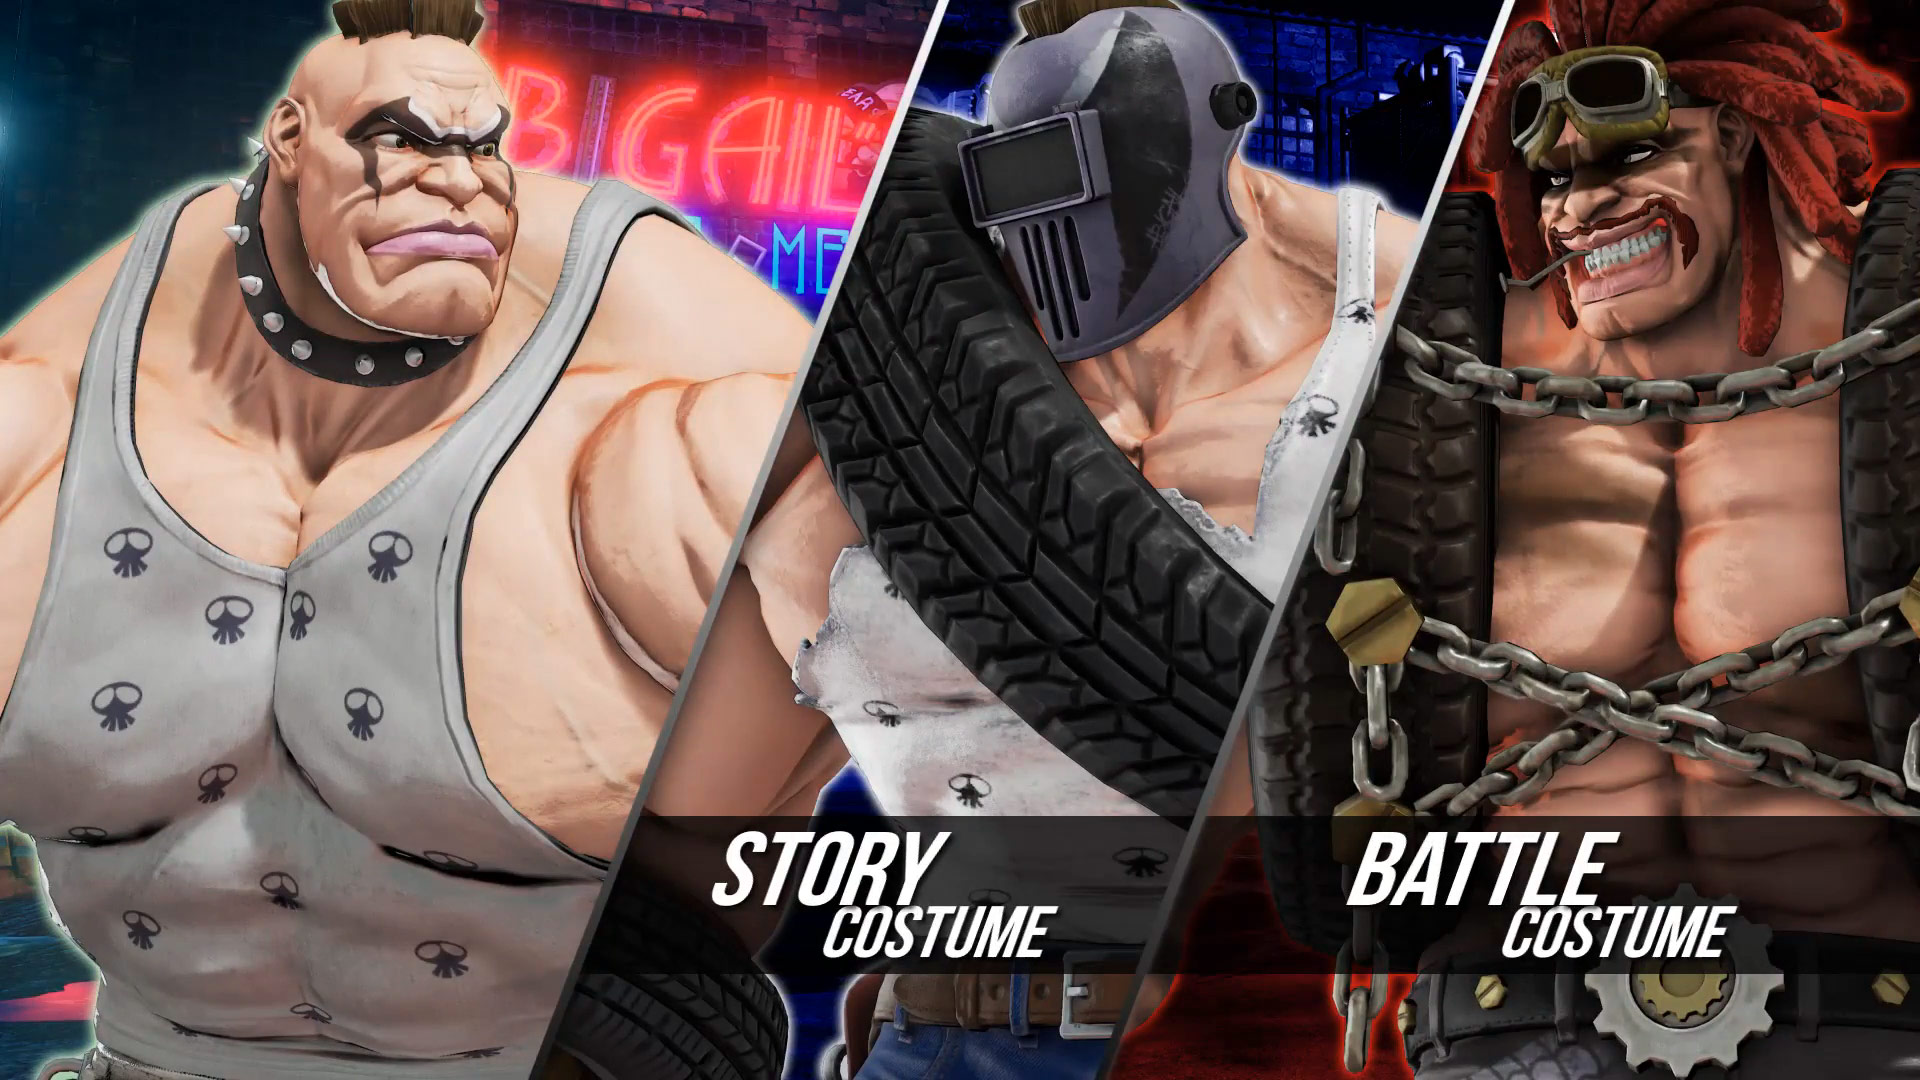 'Final Fight' boss Abigail to join 'Street Fighter V' roster